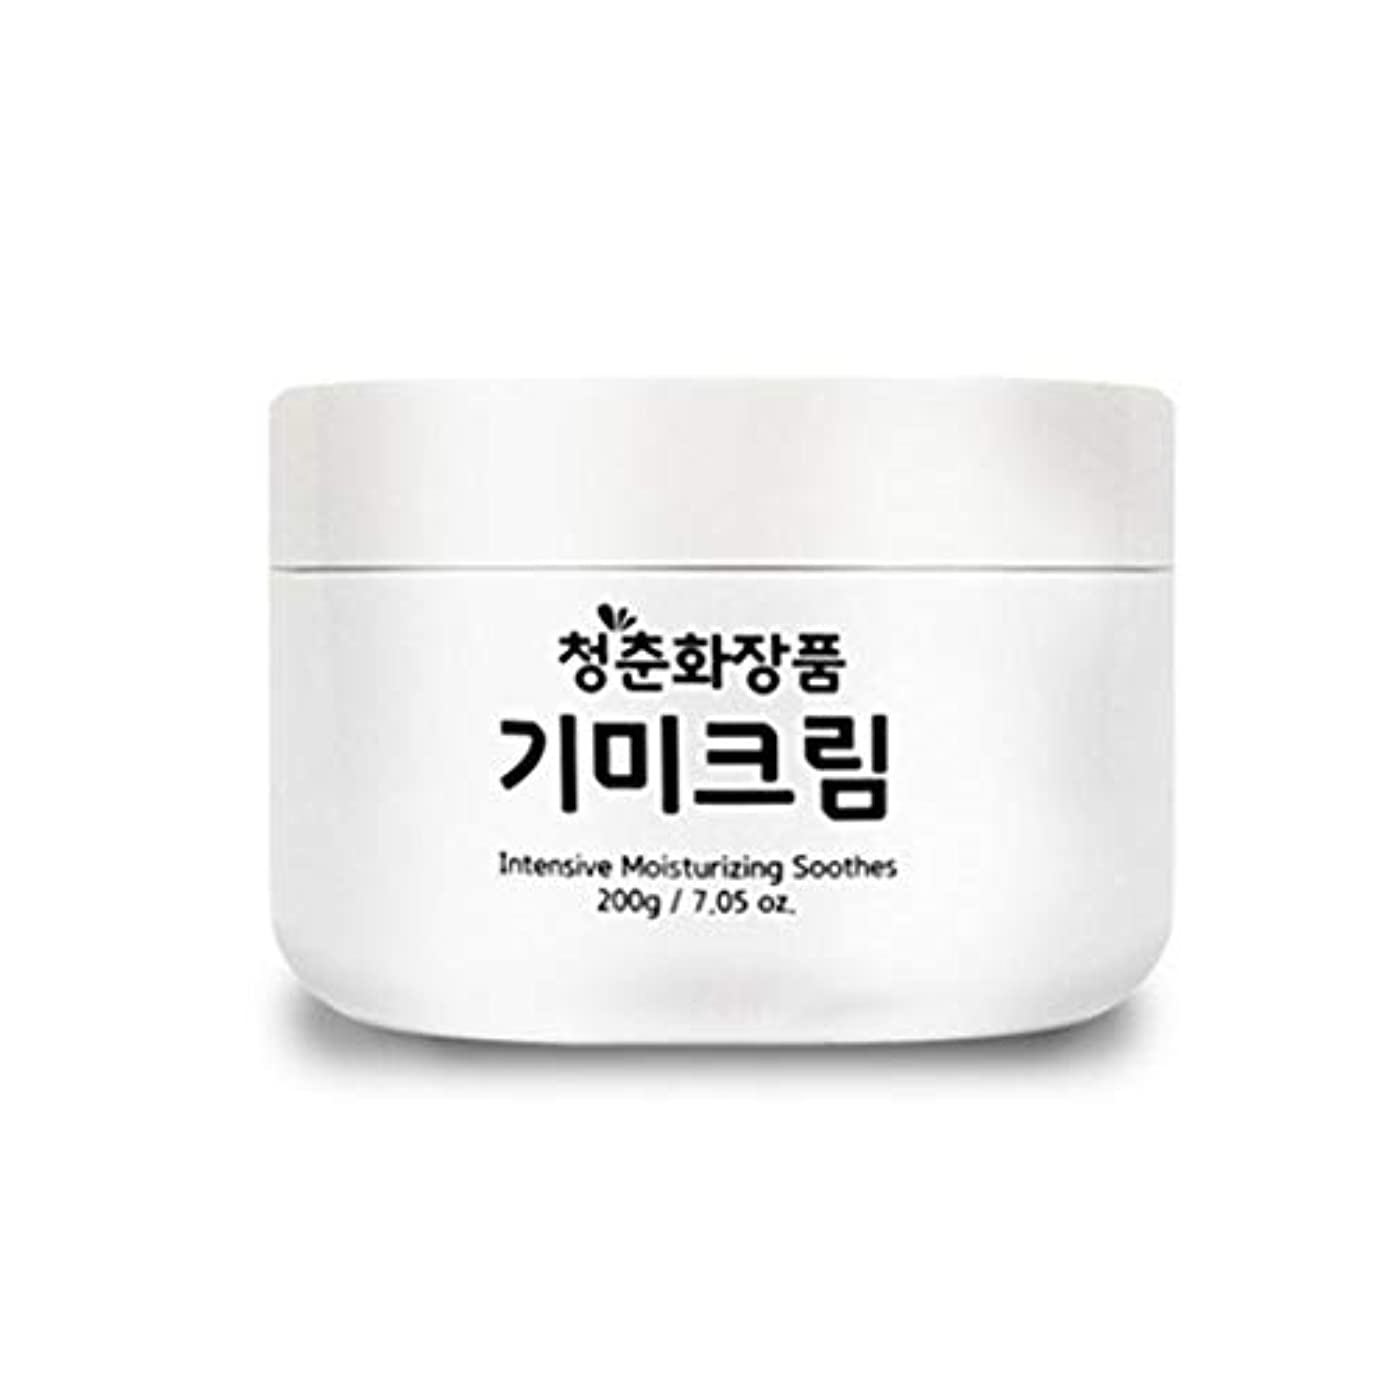 監督する舌な天青春化粧品シミクリーム200g美白くすみ韓国コスメ、Chungchoon Intensive Moisturizing Soothes Cream 200g Melasma Mitigation Cream Korean...